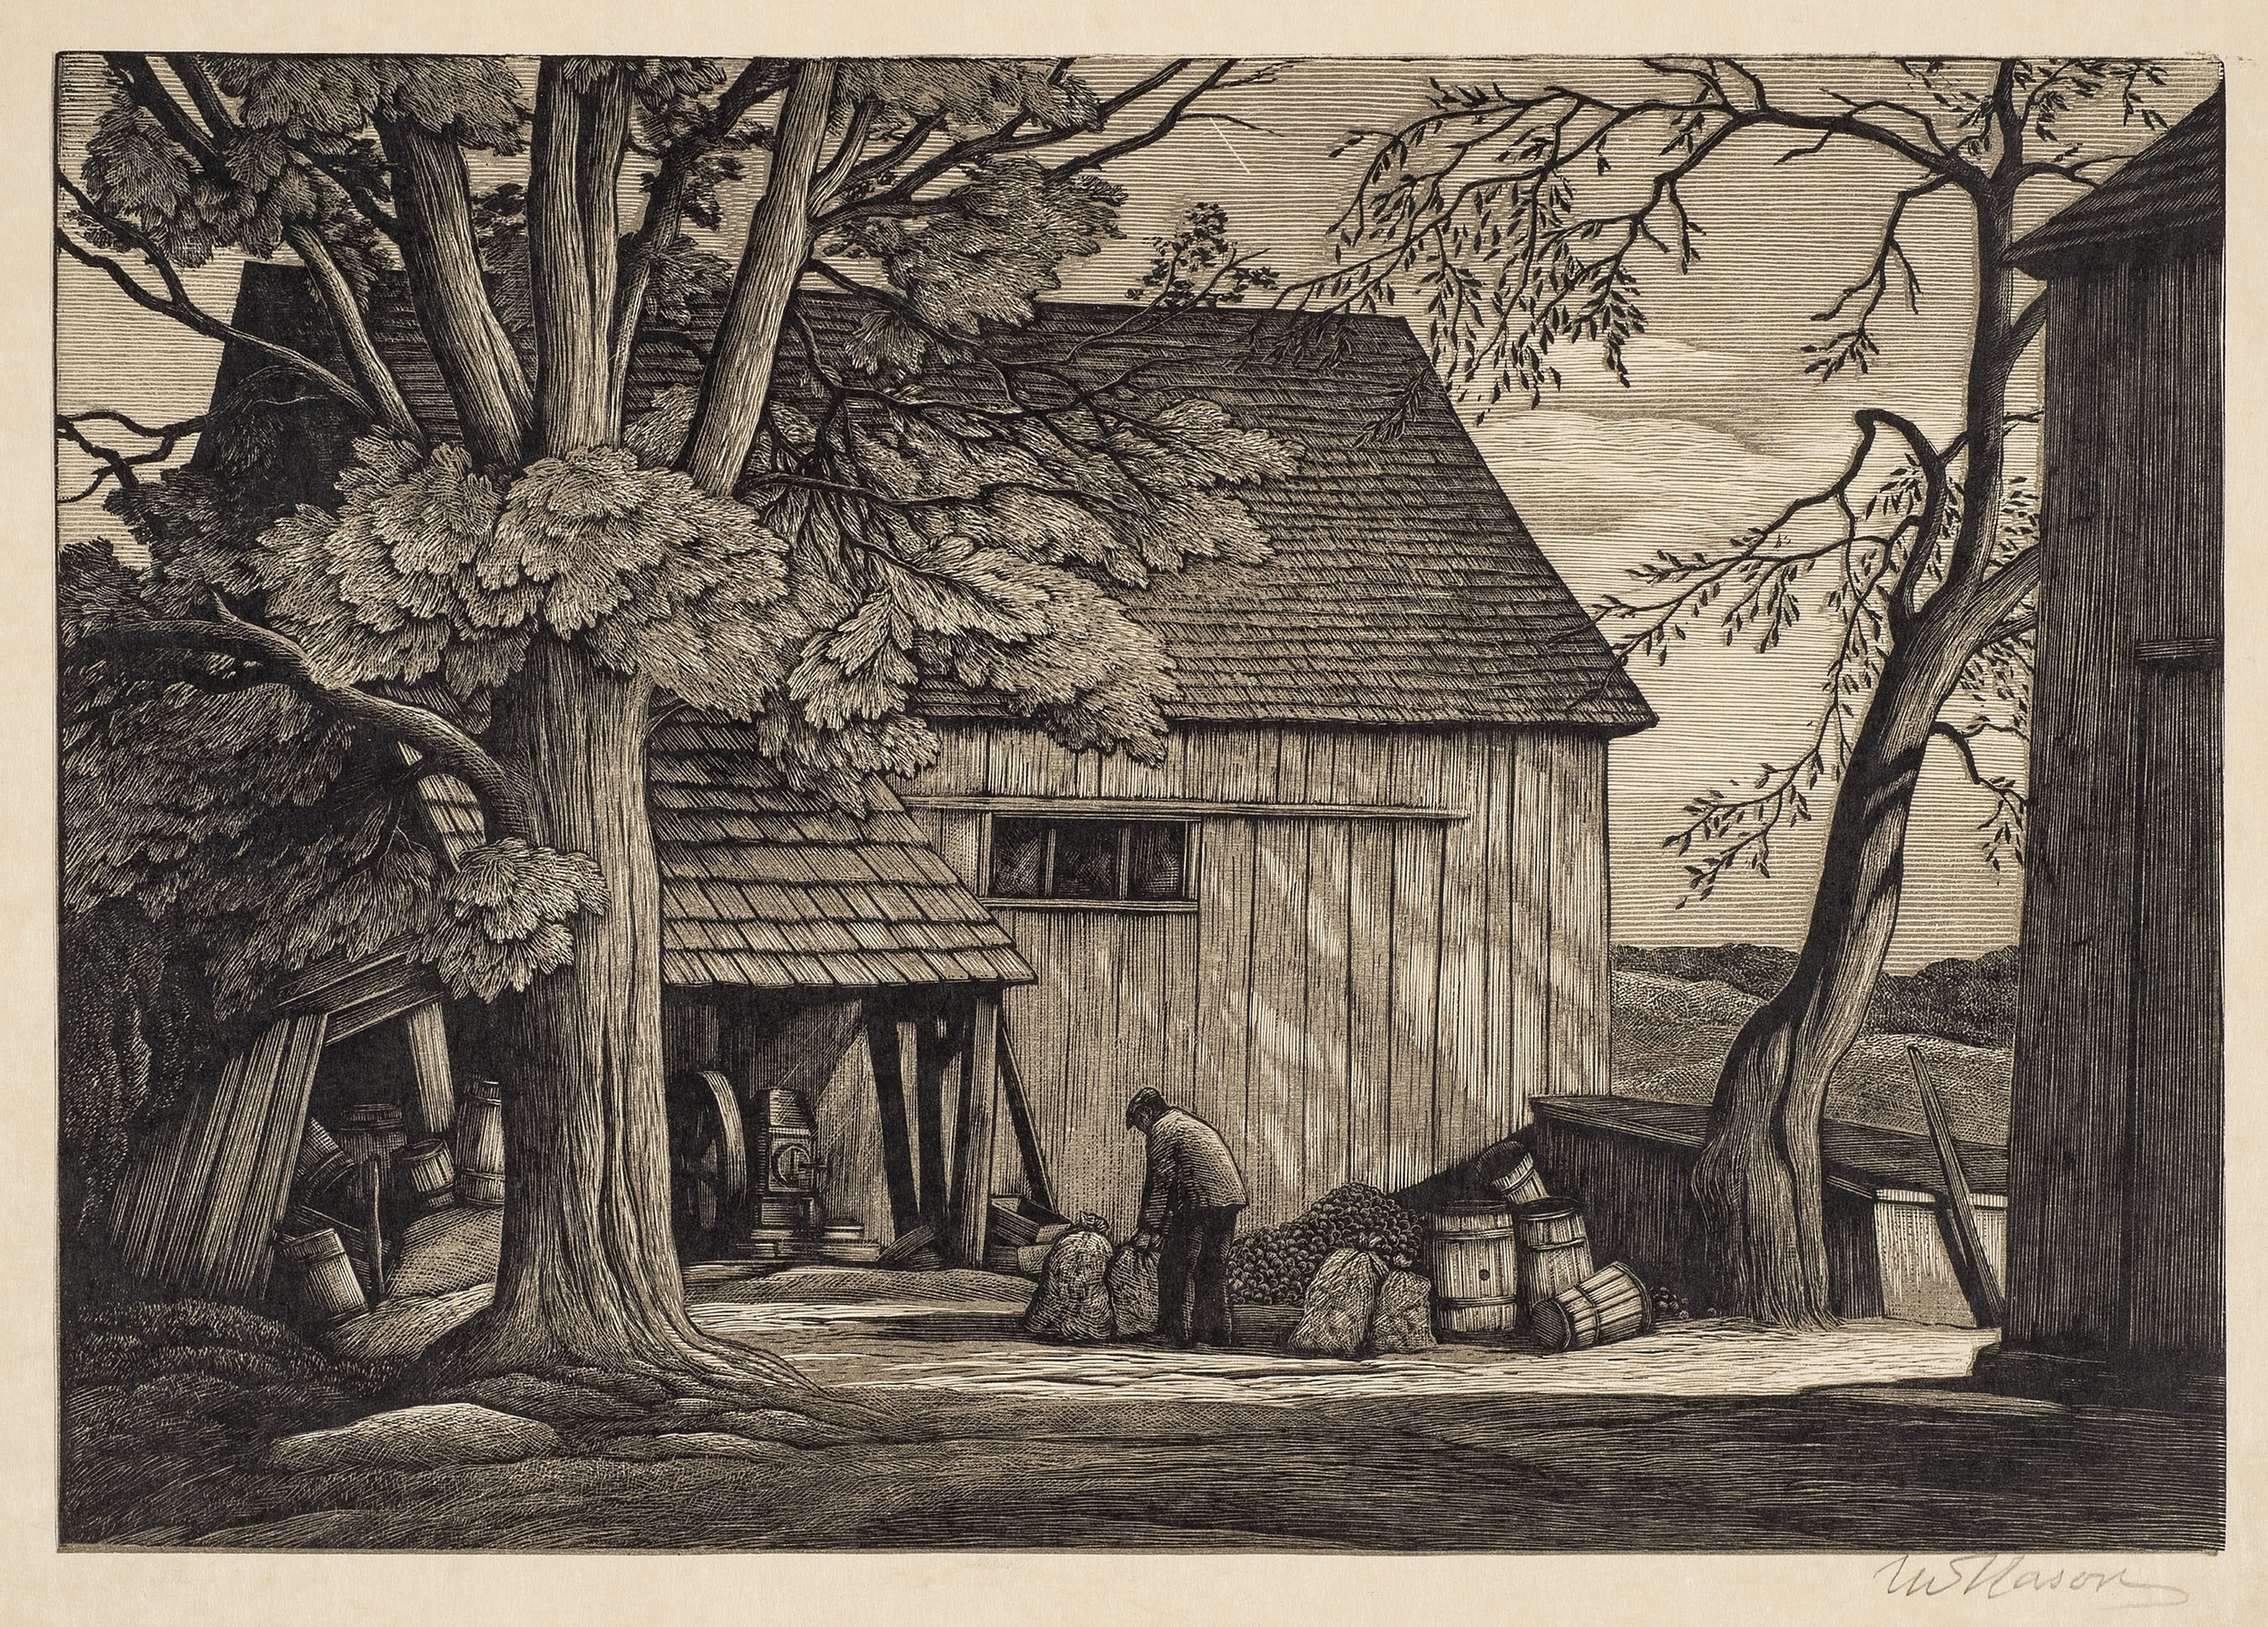 Thomas Nason,  The Cider Mill  (final state), 1944, Chiaroscuro wood engraving with olive, black, and gray blocks, 7 x 10 in. Florence Griswold Museum, Purchase